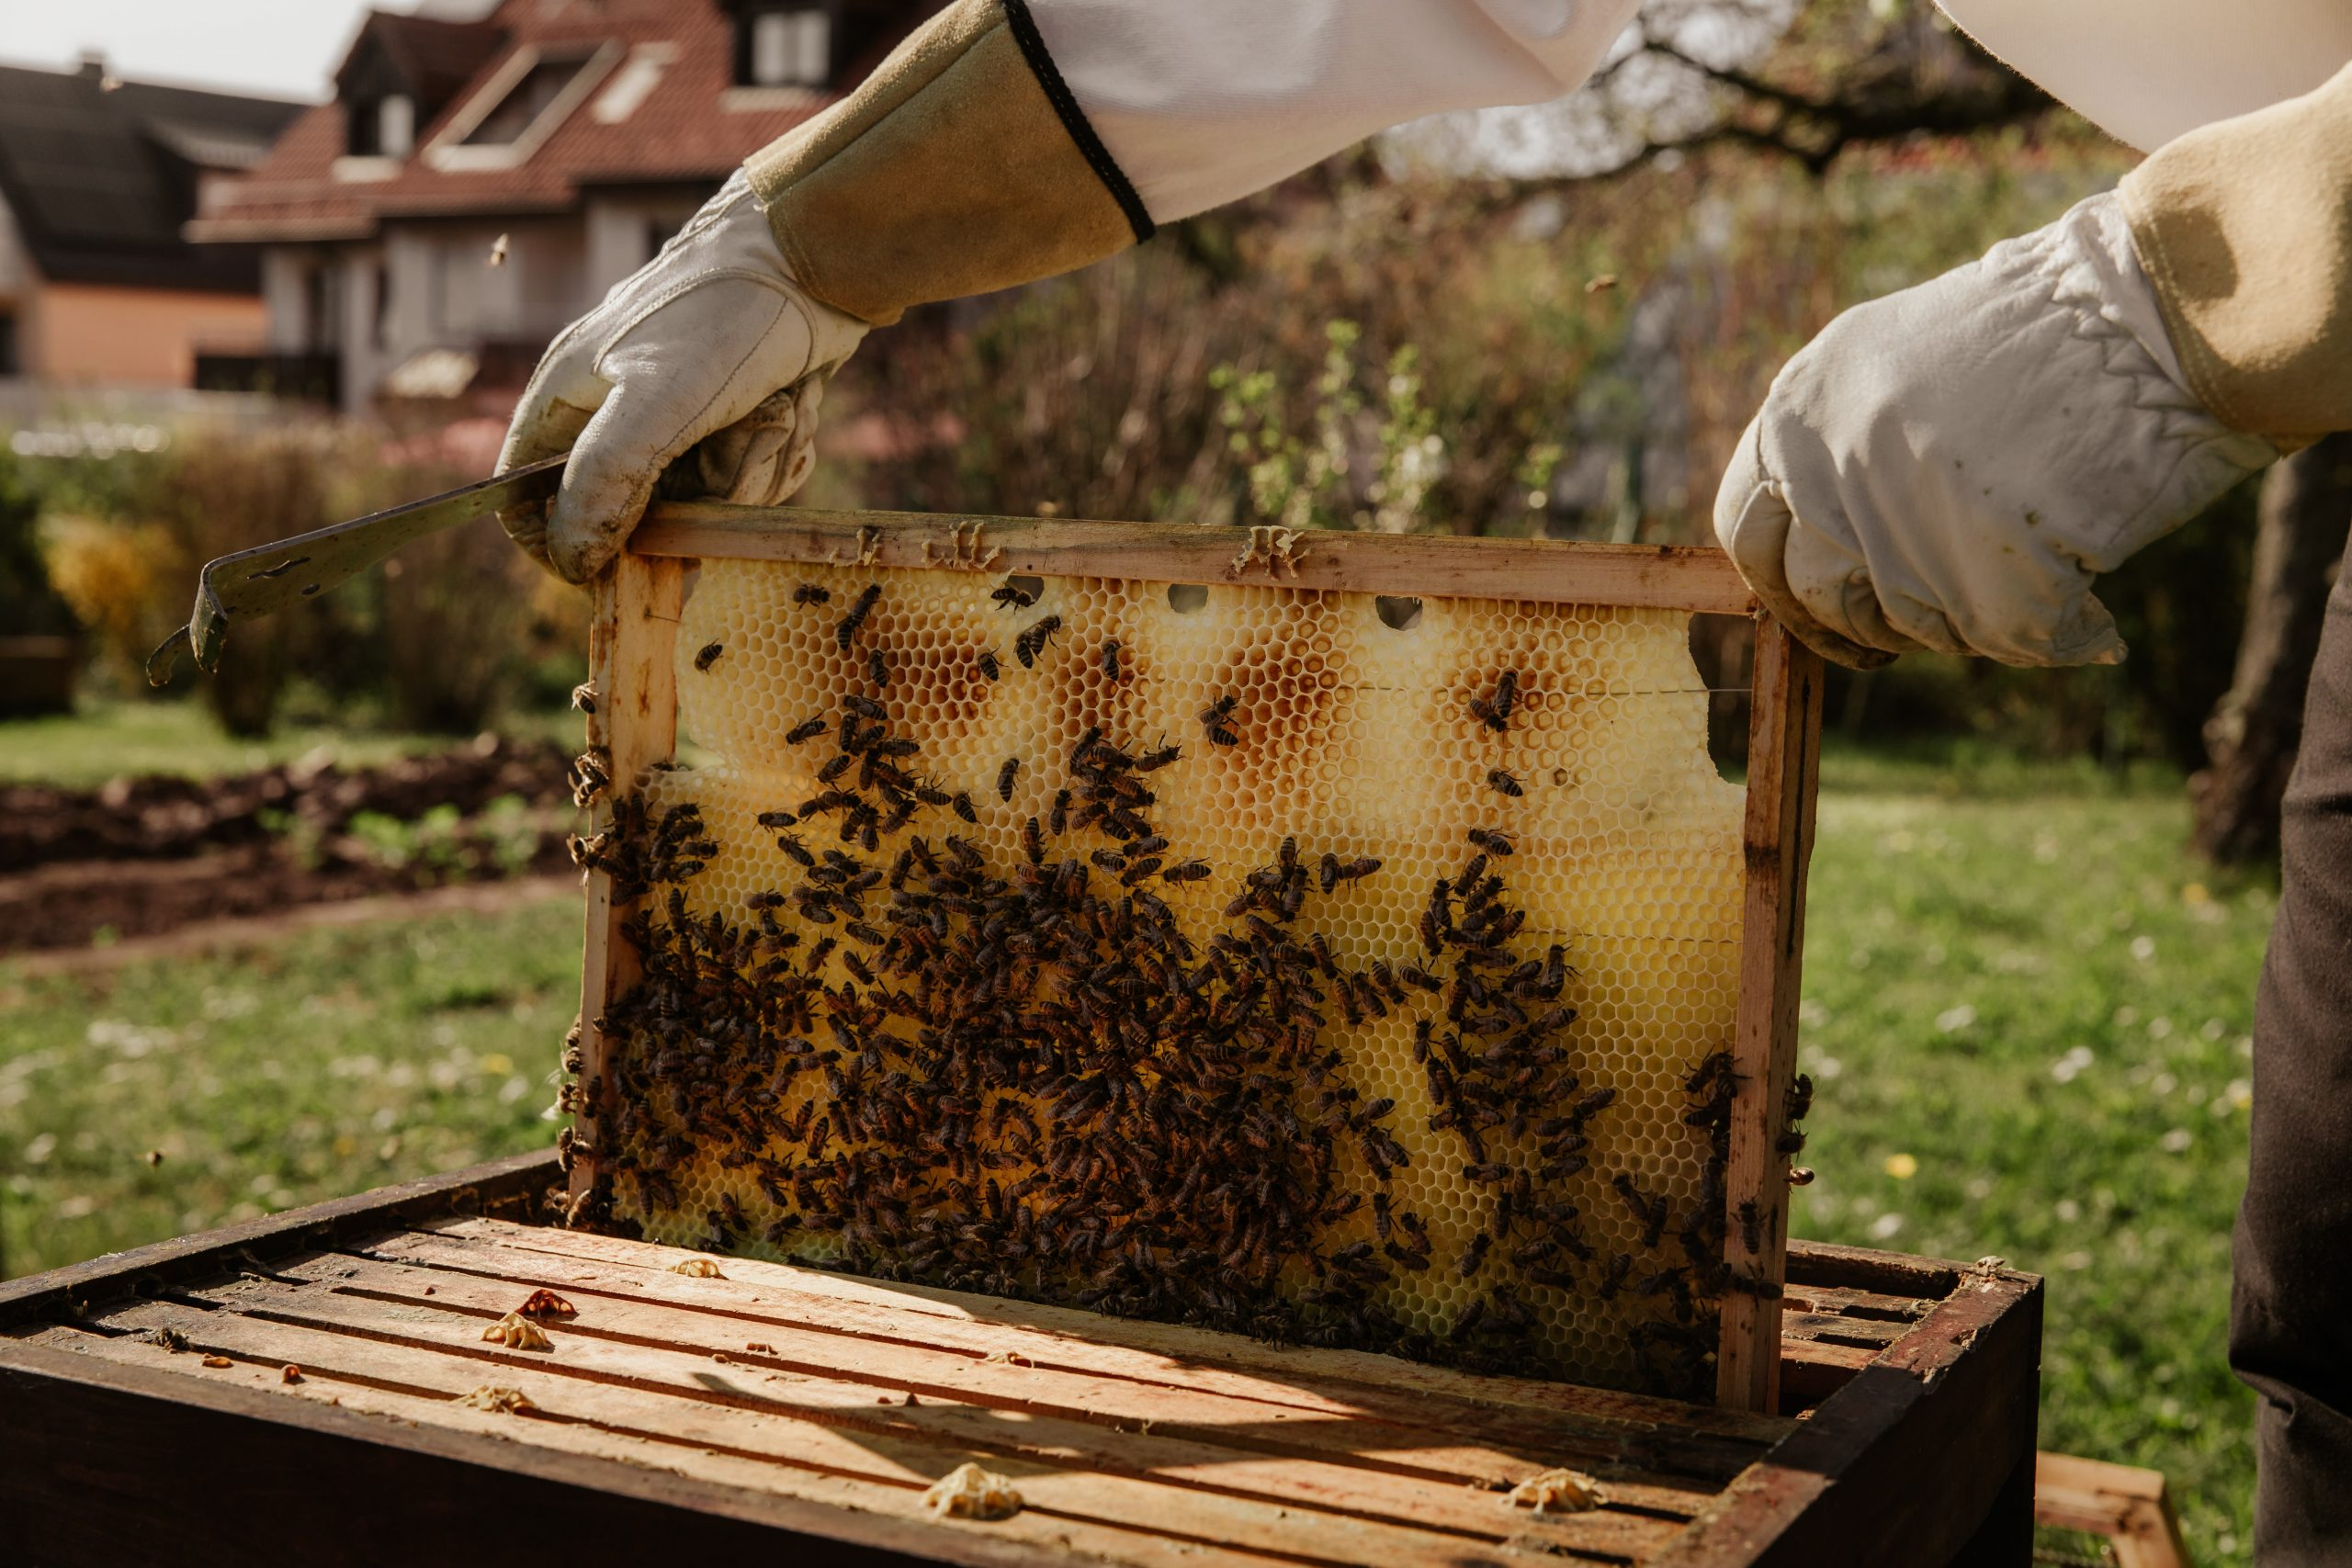 Beekeeper with movable frame honey